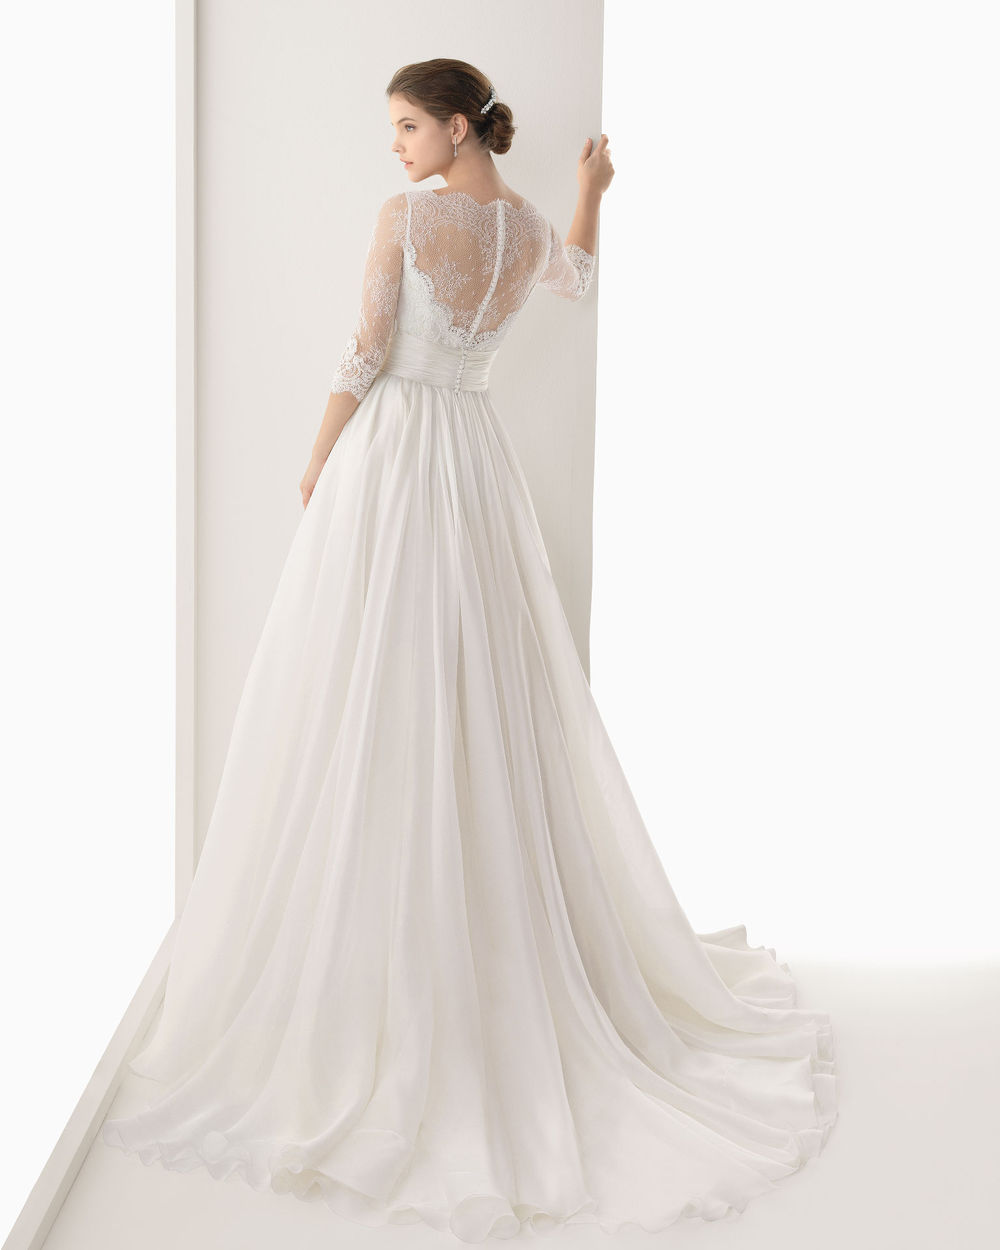 2014 organza a-line wedding dress with long sleeves | Sang Maestro